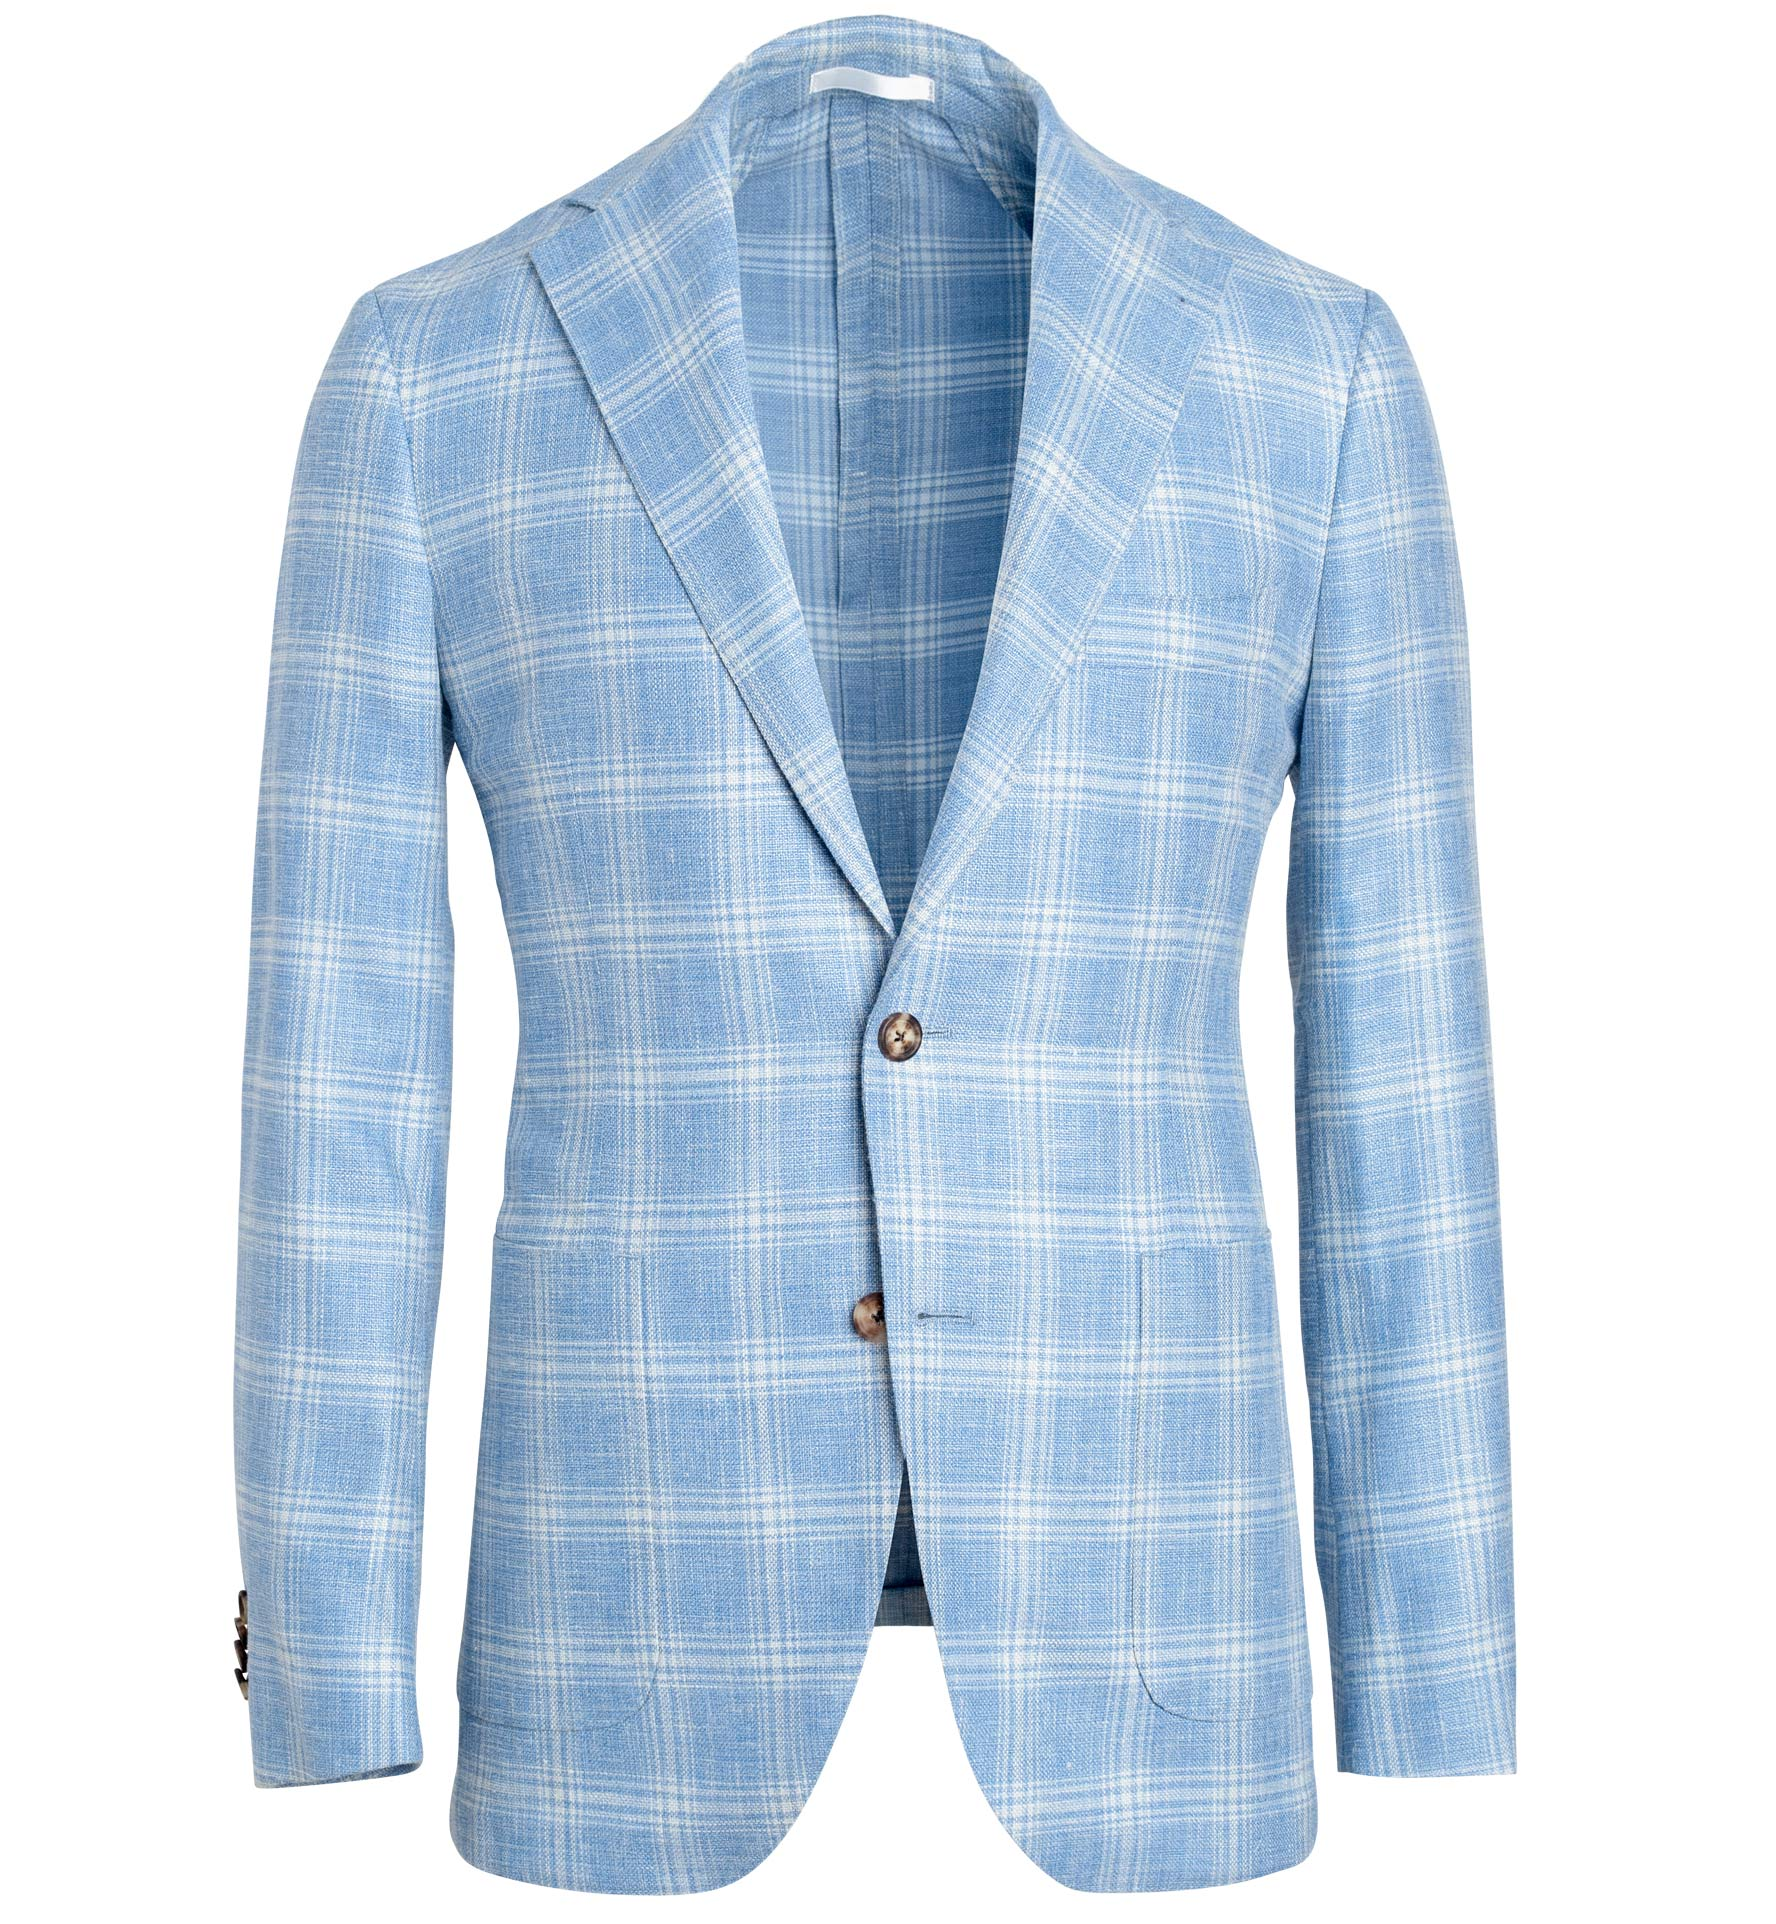 Zoom Image of Bedford Light Blue Plaid Wool Blend Jacket